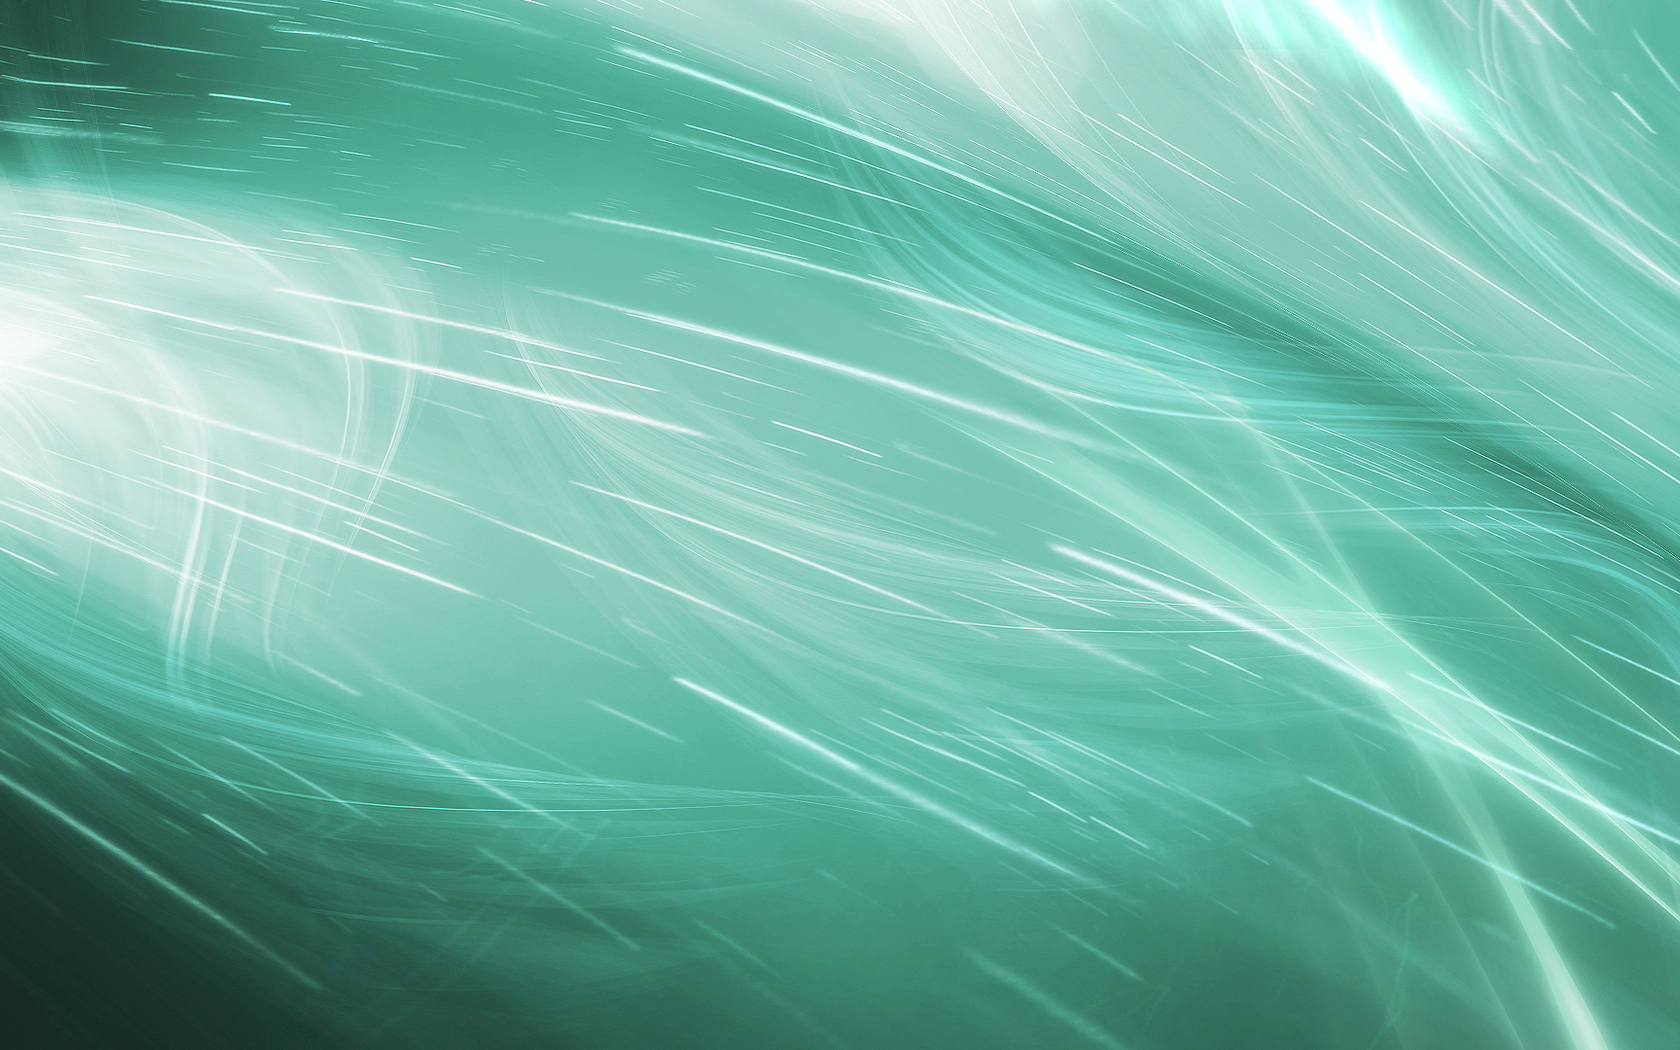 Wind Abstract Wallpaper 29107 1680x1050 px